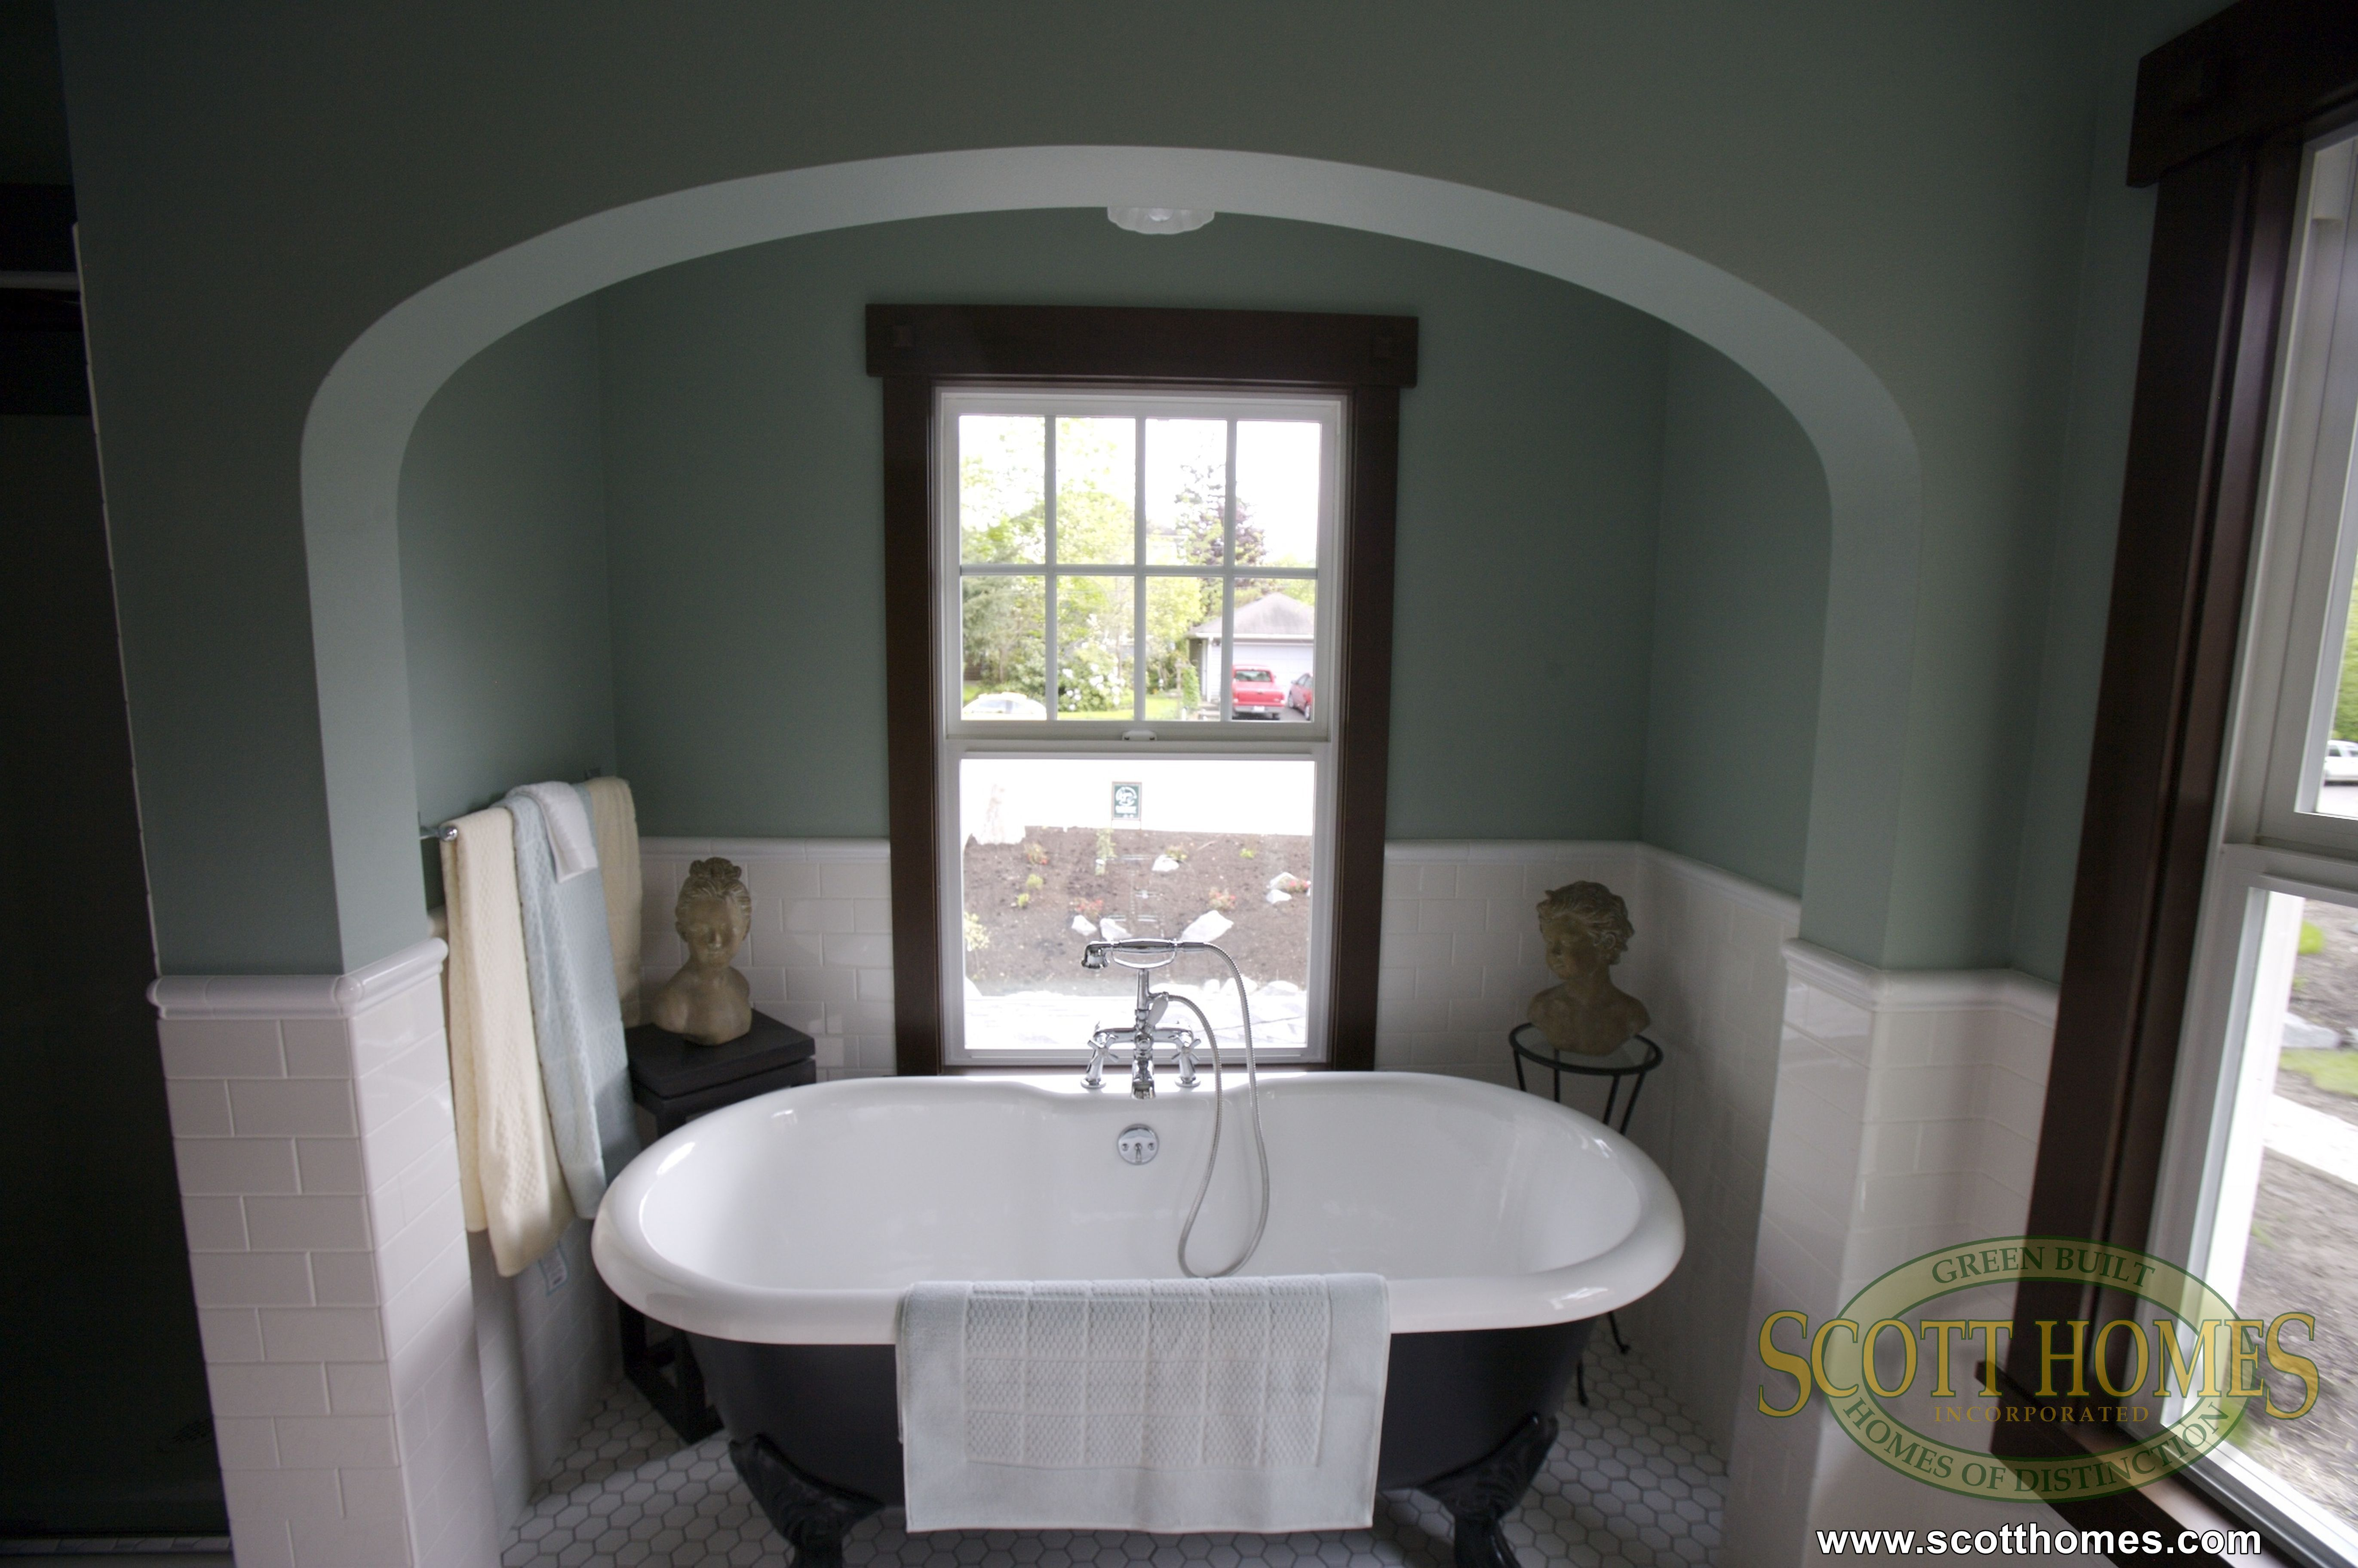 The old fashioned bathtub in the alcove is warm and inviting ...